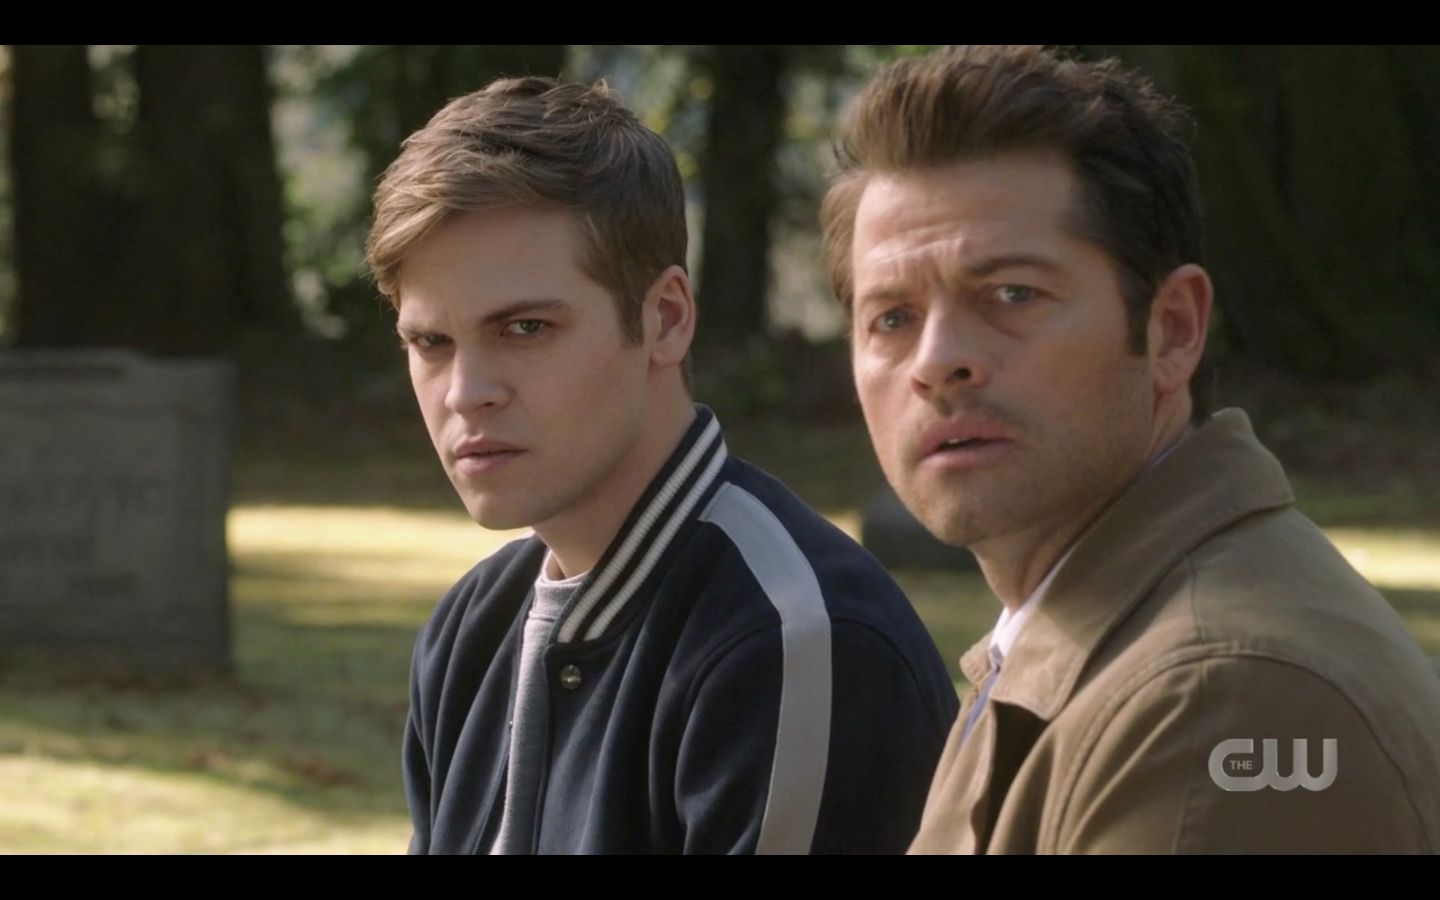 Castiel with Jack watching as Dean Winchester runs at them SPN 14.20